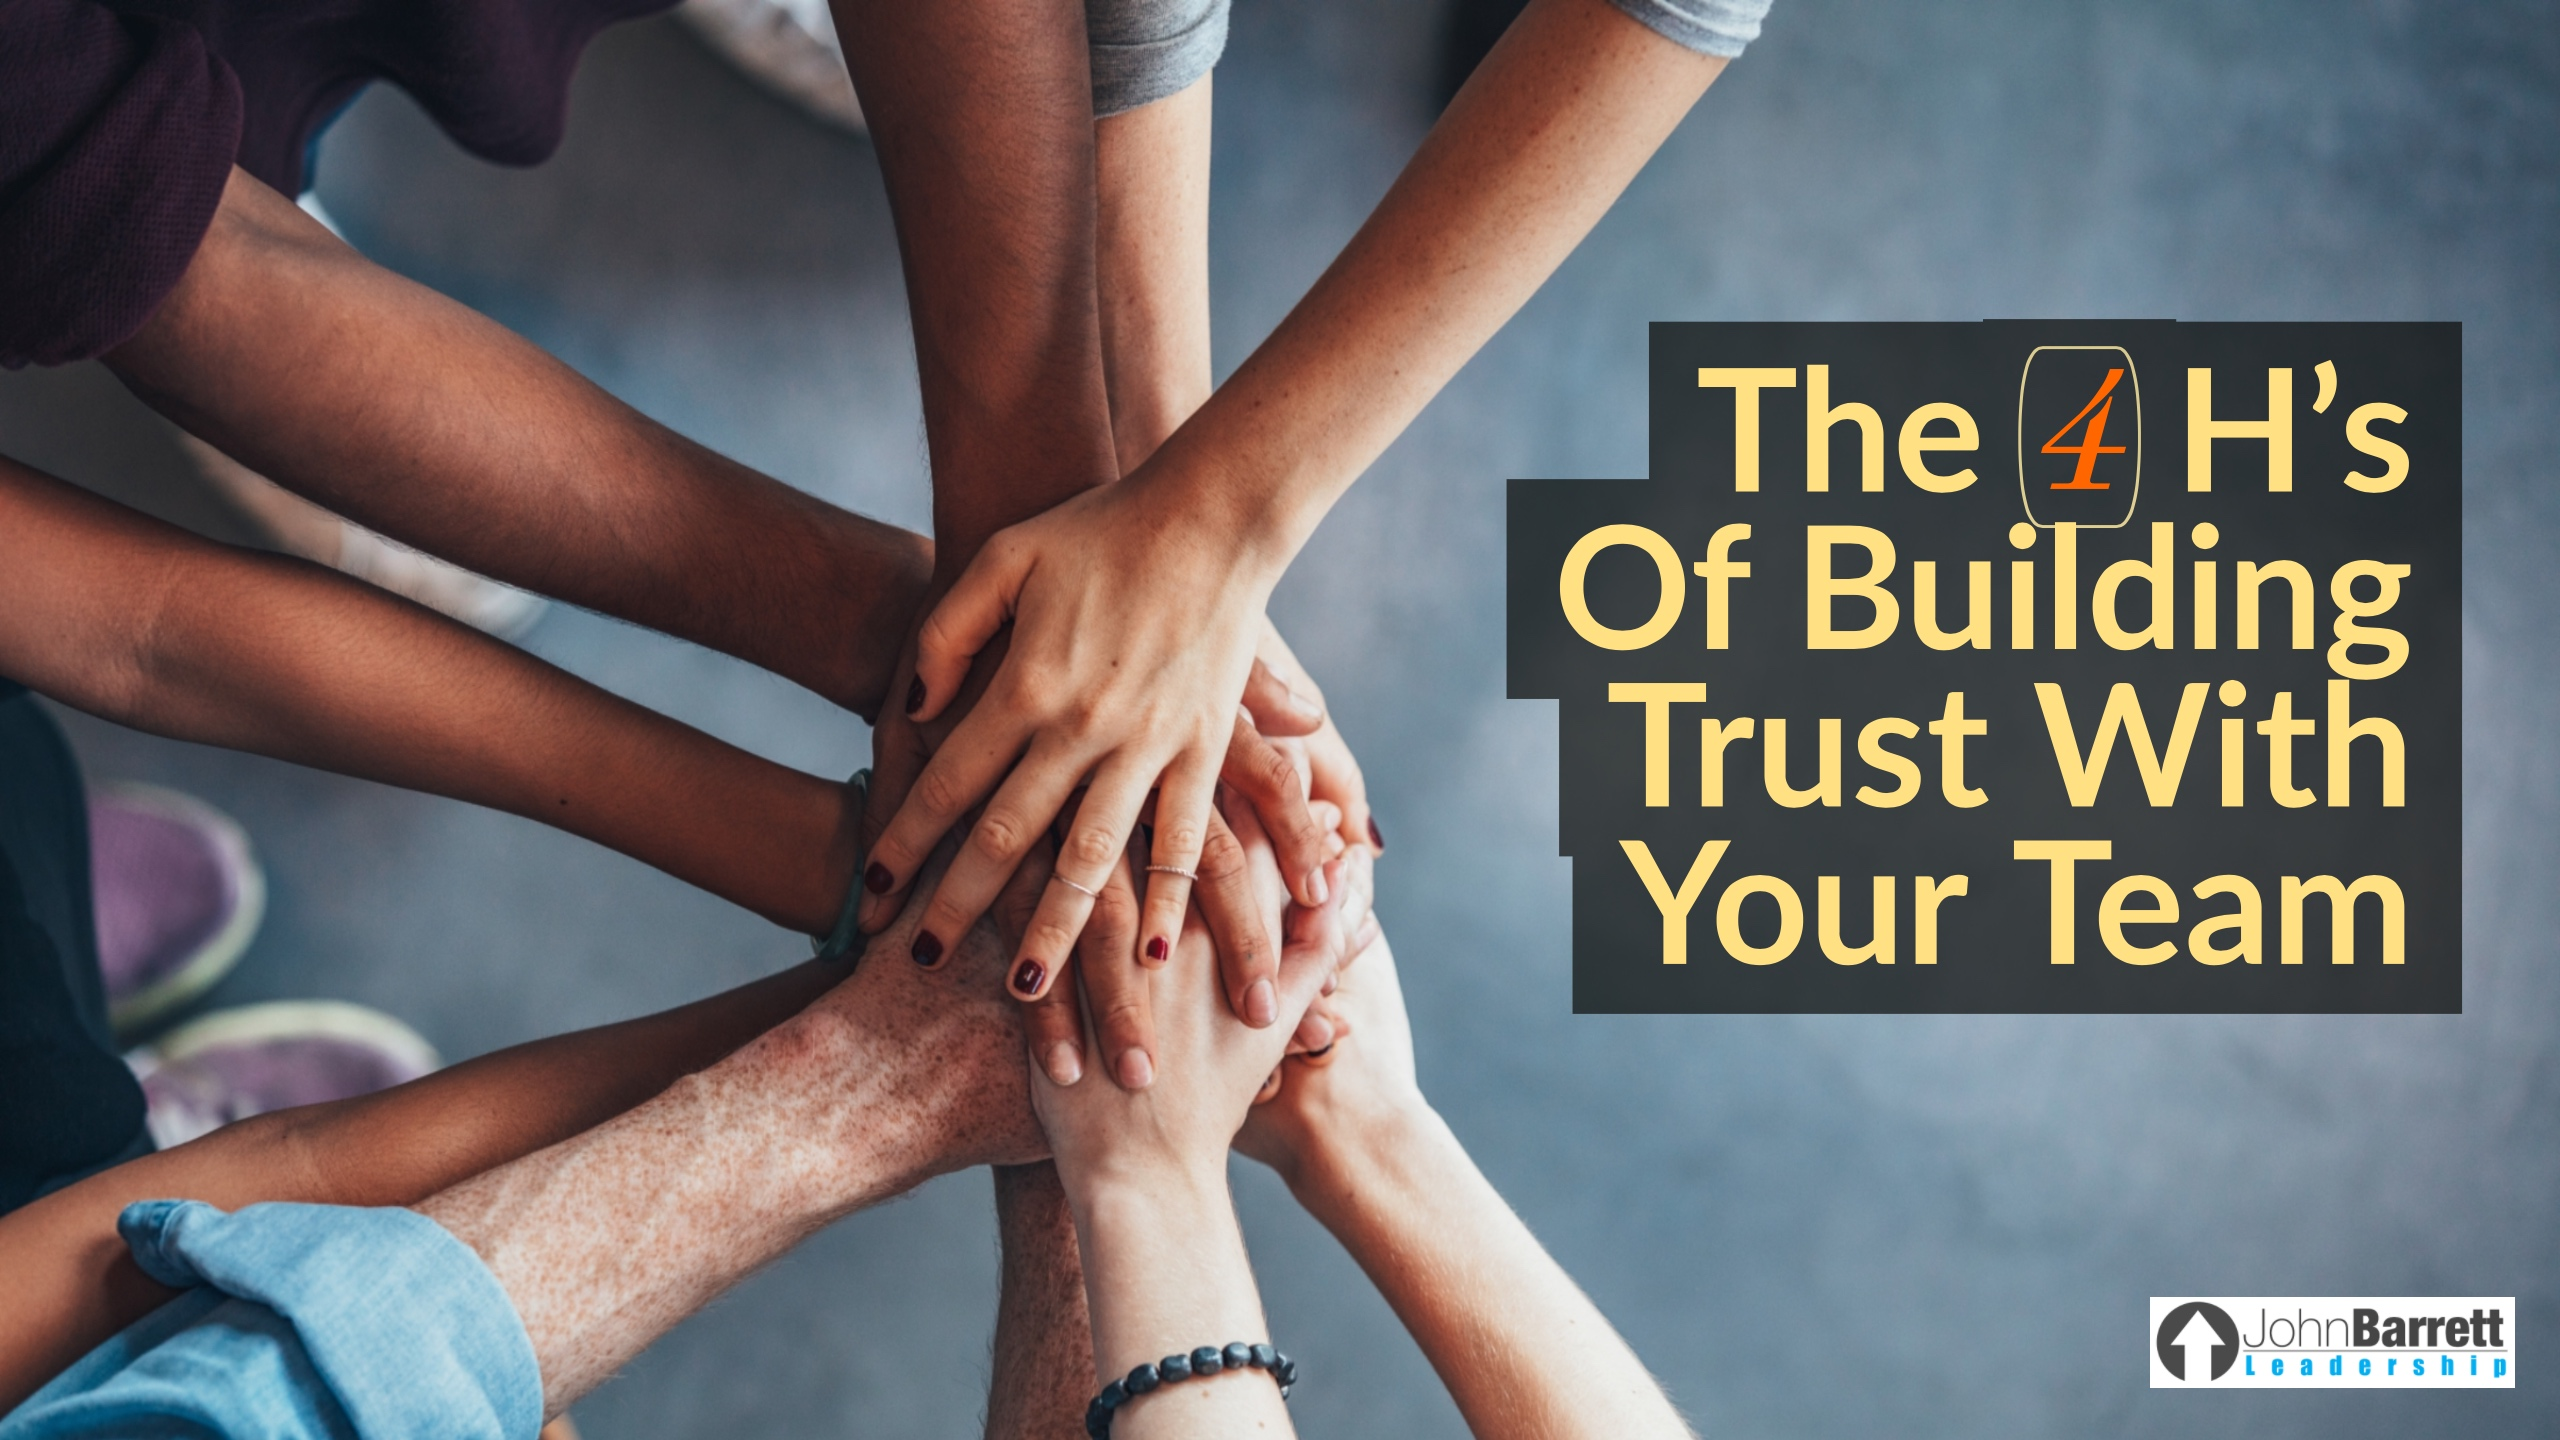 The 4 H's Of Building Trust With Your Team